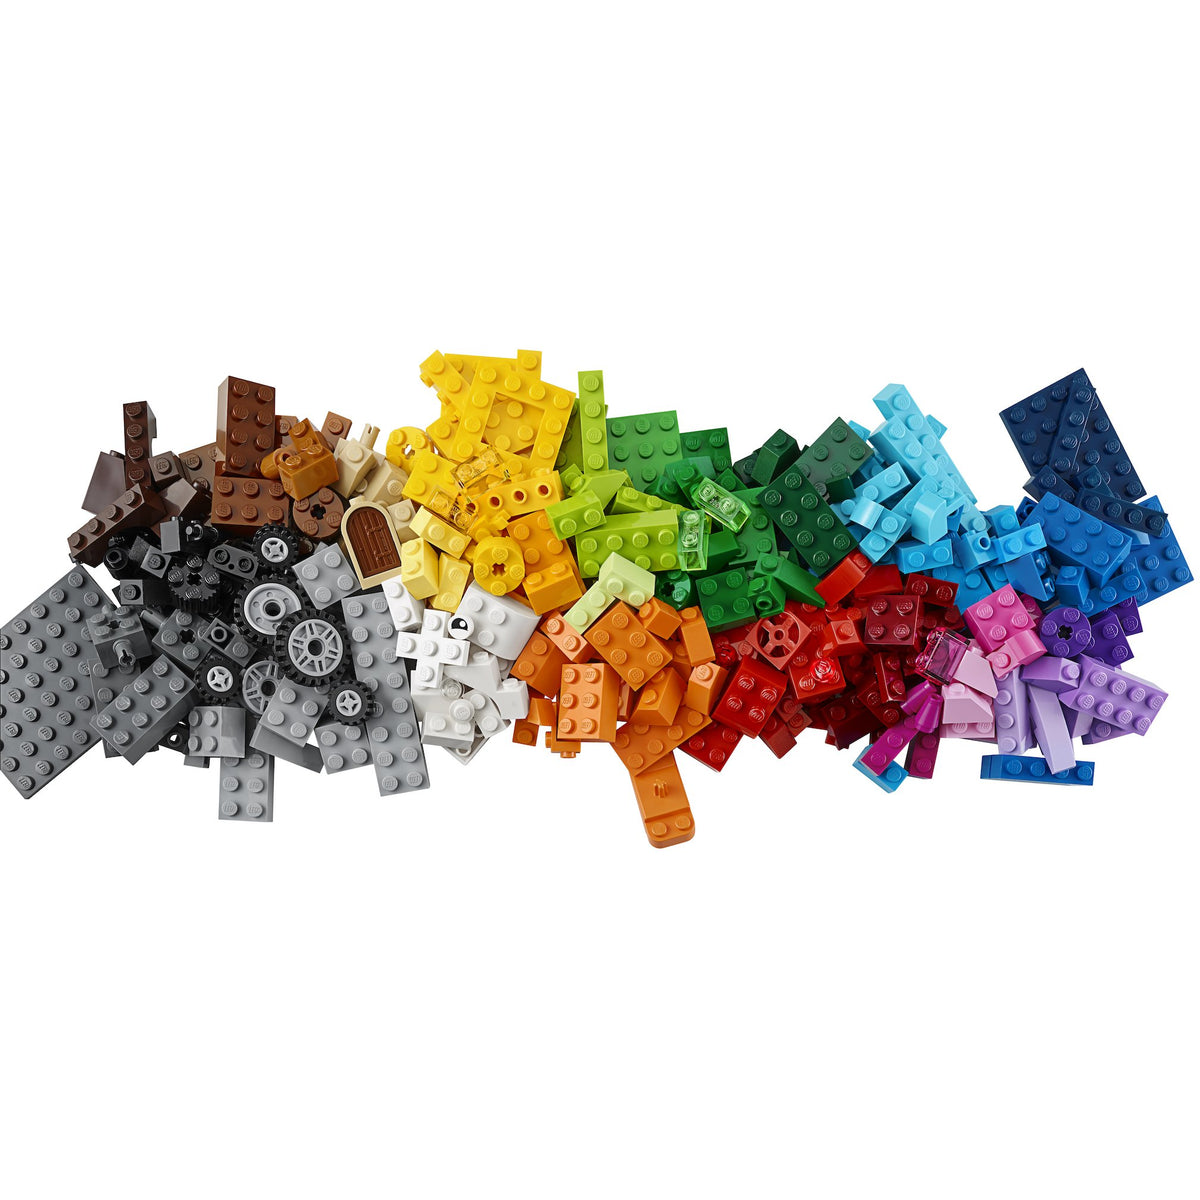 LEGO Classic Medium Creative Brick Box Pieces